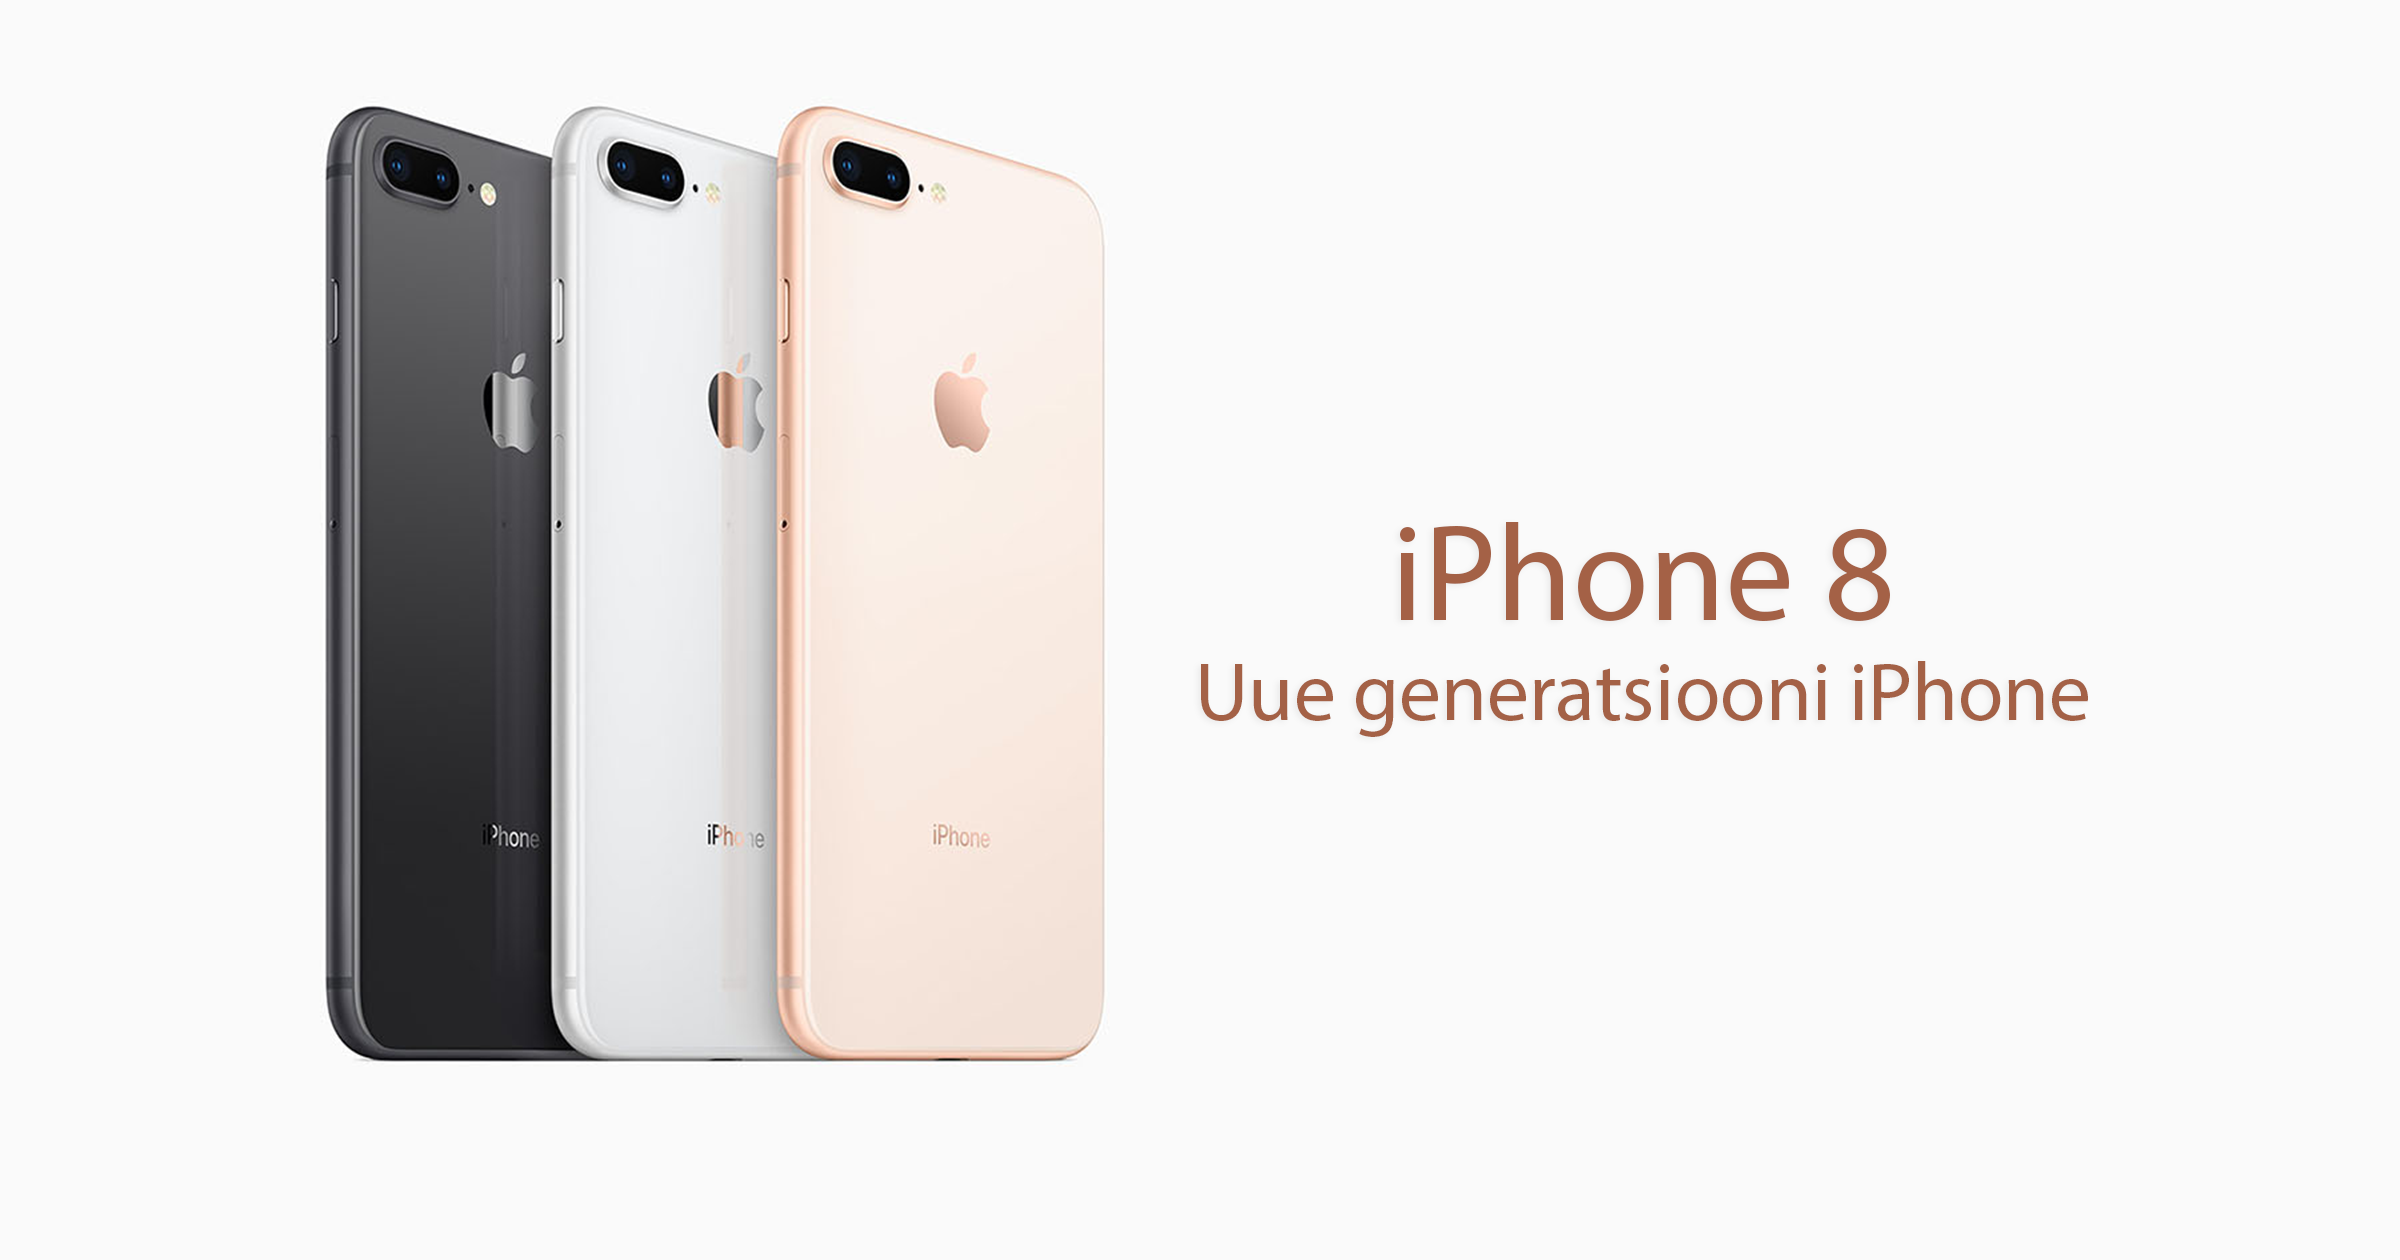 iphone 8 iphone 8 plus new iphone uus iphone new generation iphone apple mobipunkt ipad wacth  macbook  iphone 8 hind iphone 8 müük